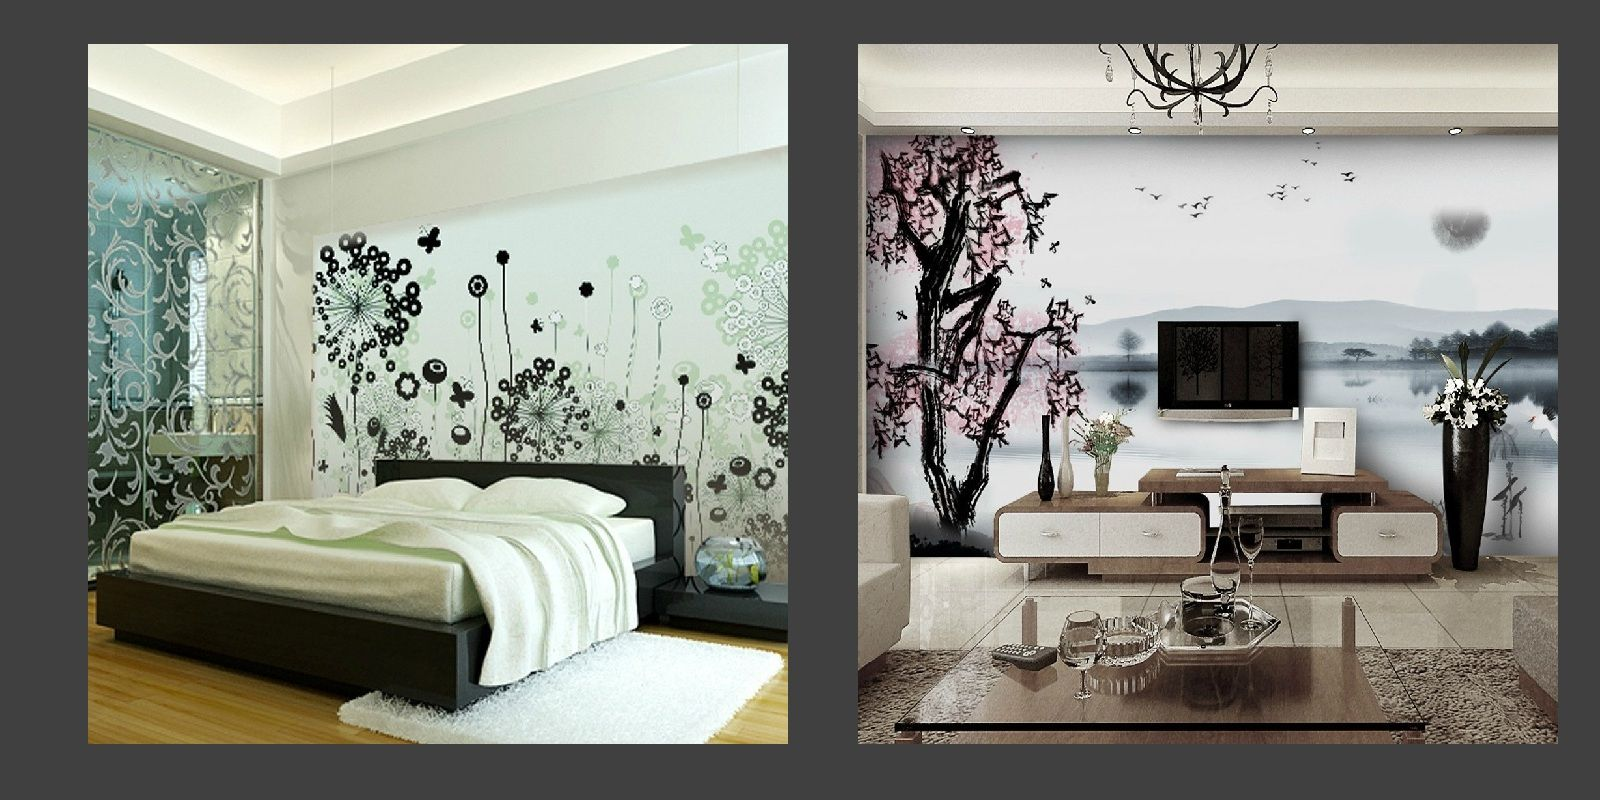 Home Wallpaper Design Patterns | Home Wallpaper Designs ...